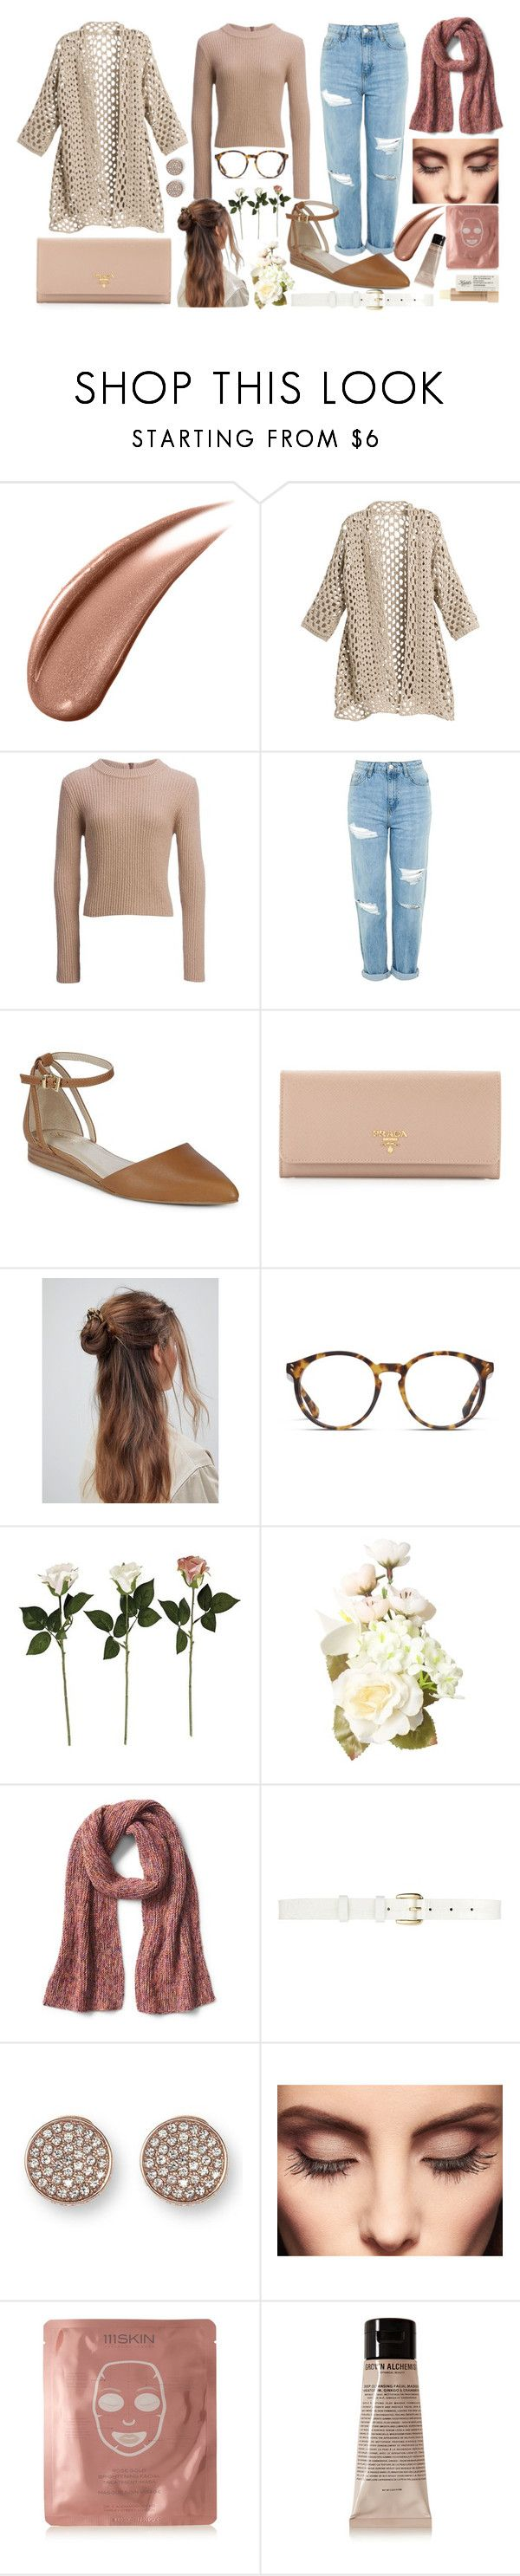 """Natural feels"" by chalotteleah on Polyvore featuring Chico's, Carve Designs, Topshop, Seychelles, Prada, ASOS, STELLA McCARTNEY, Oscar de la Renta, Vince Camuto and Claire Evans"